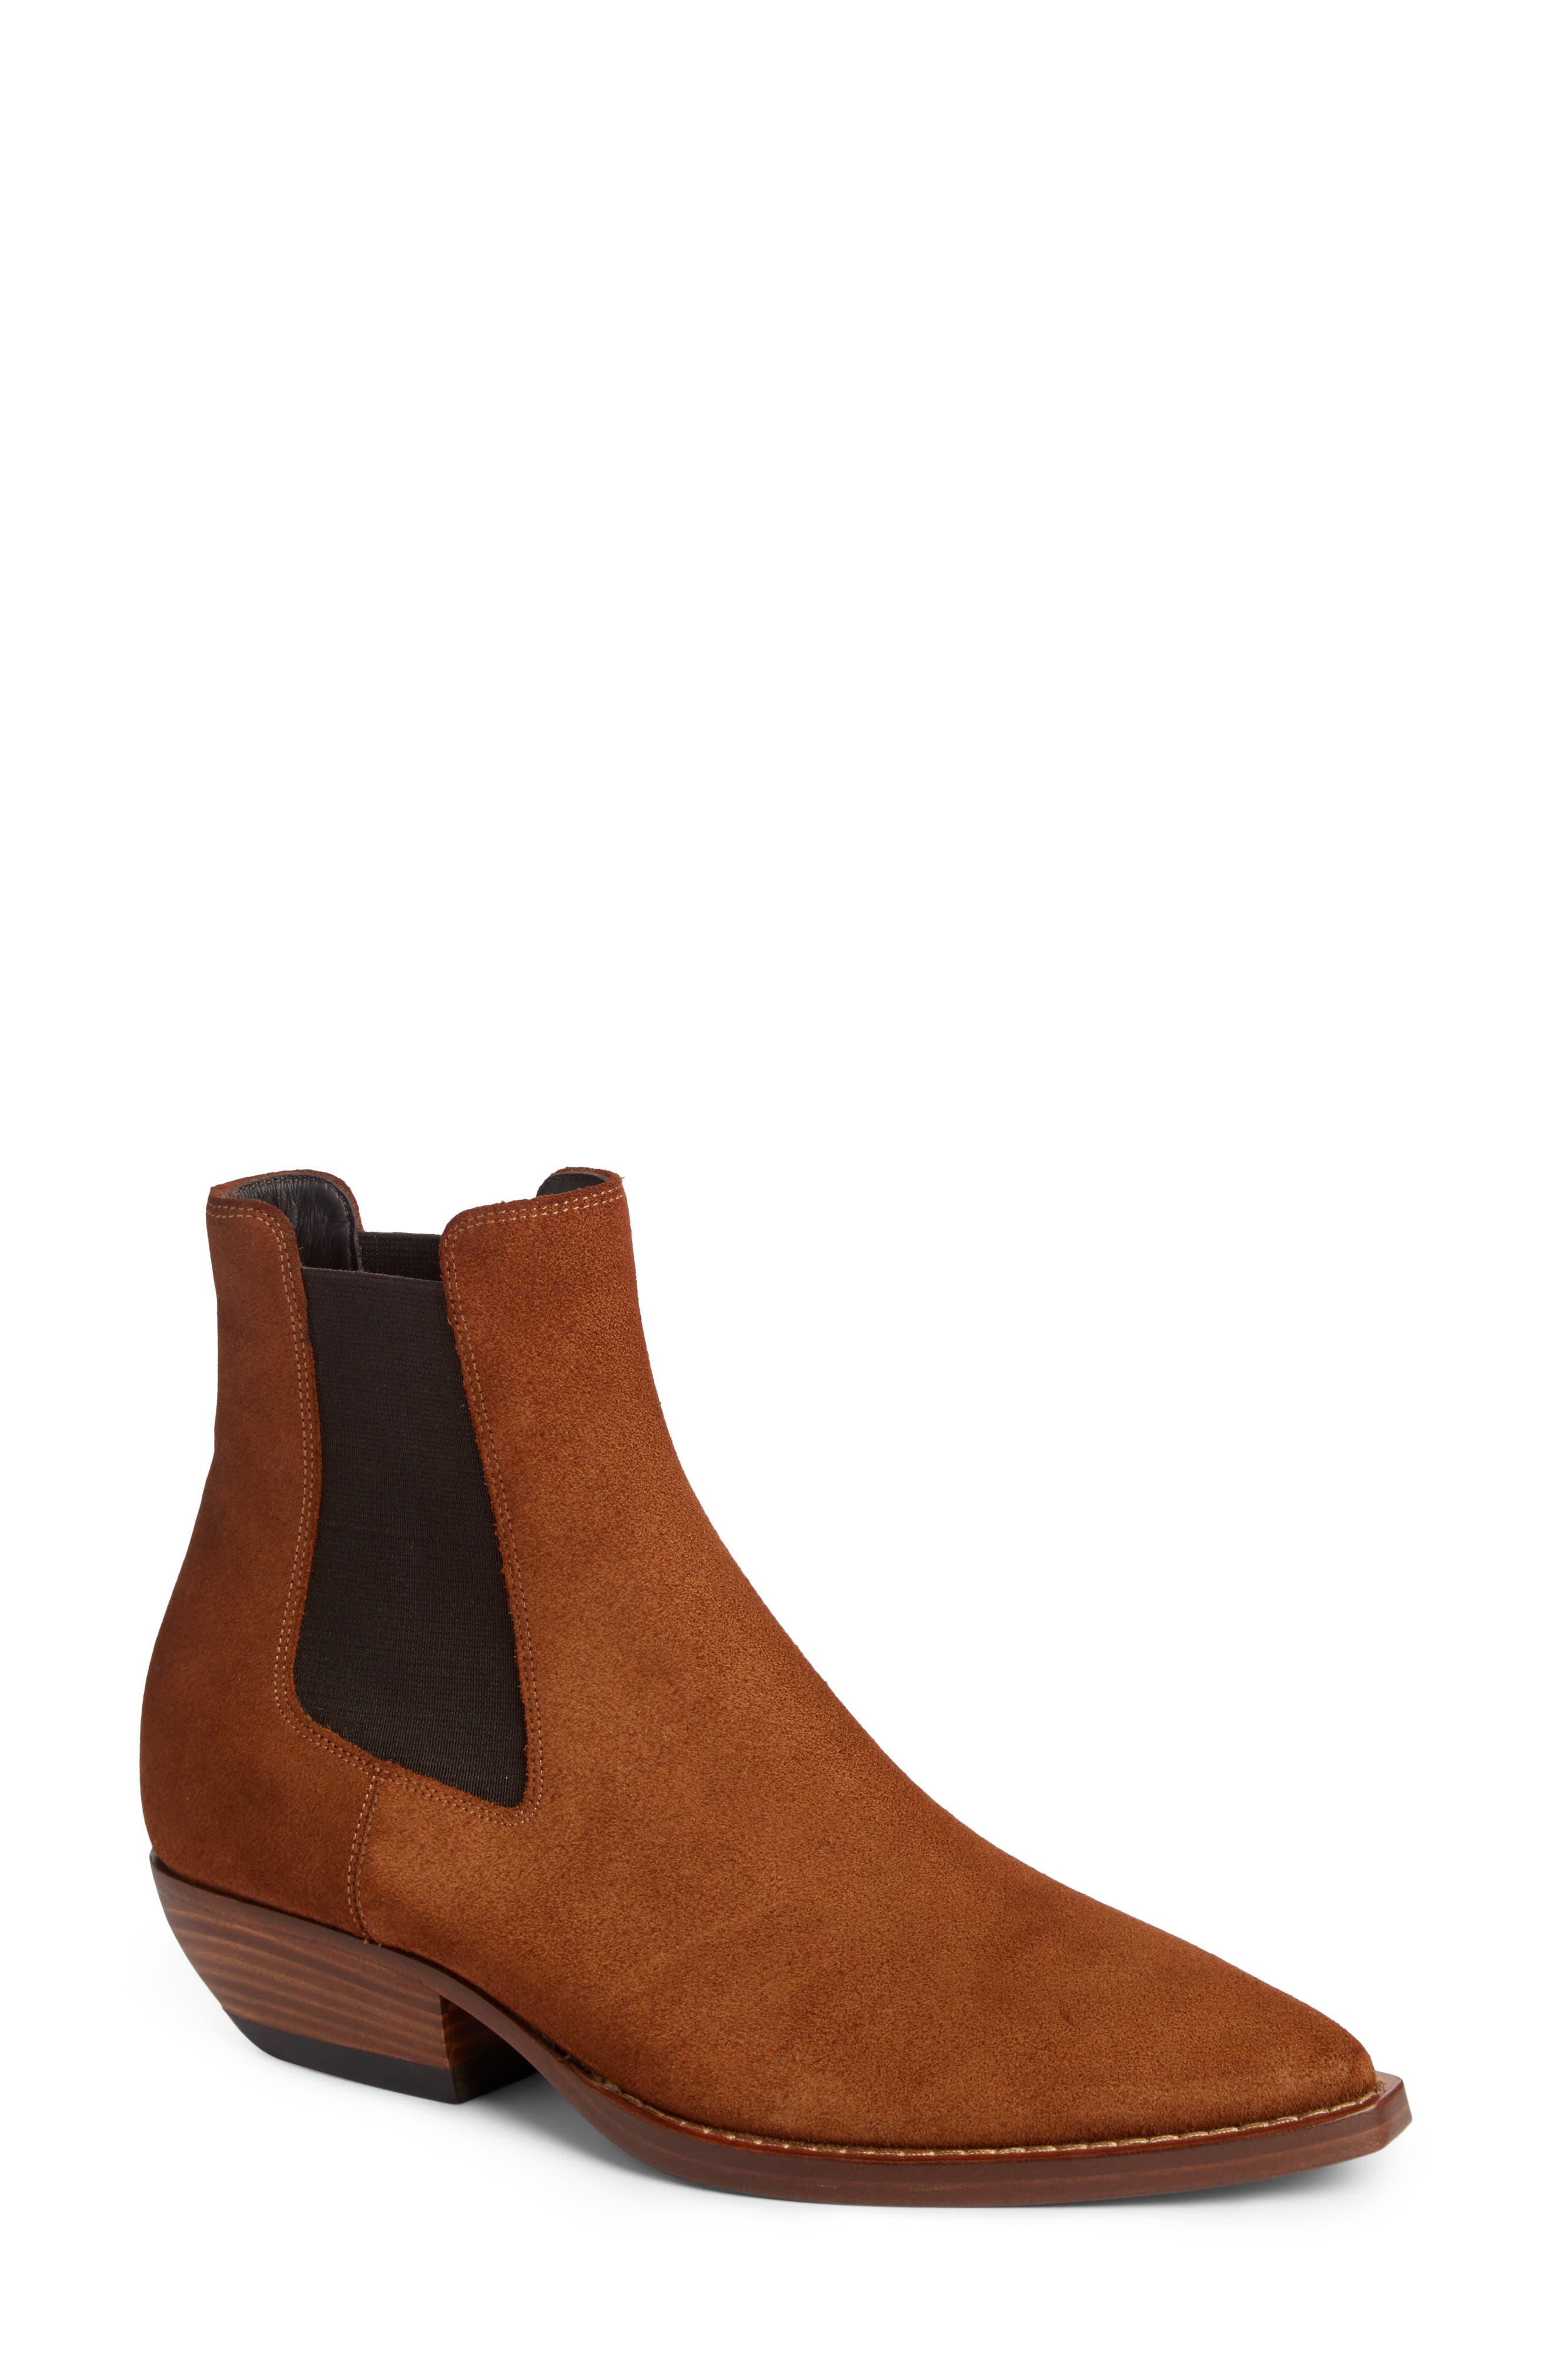 Theo Boot,                         Main,                         color, Land Suede